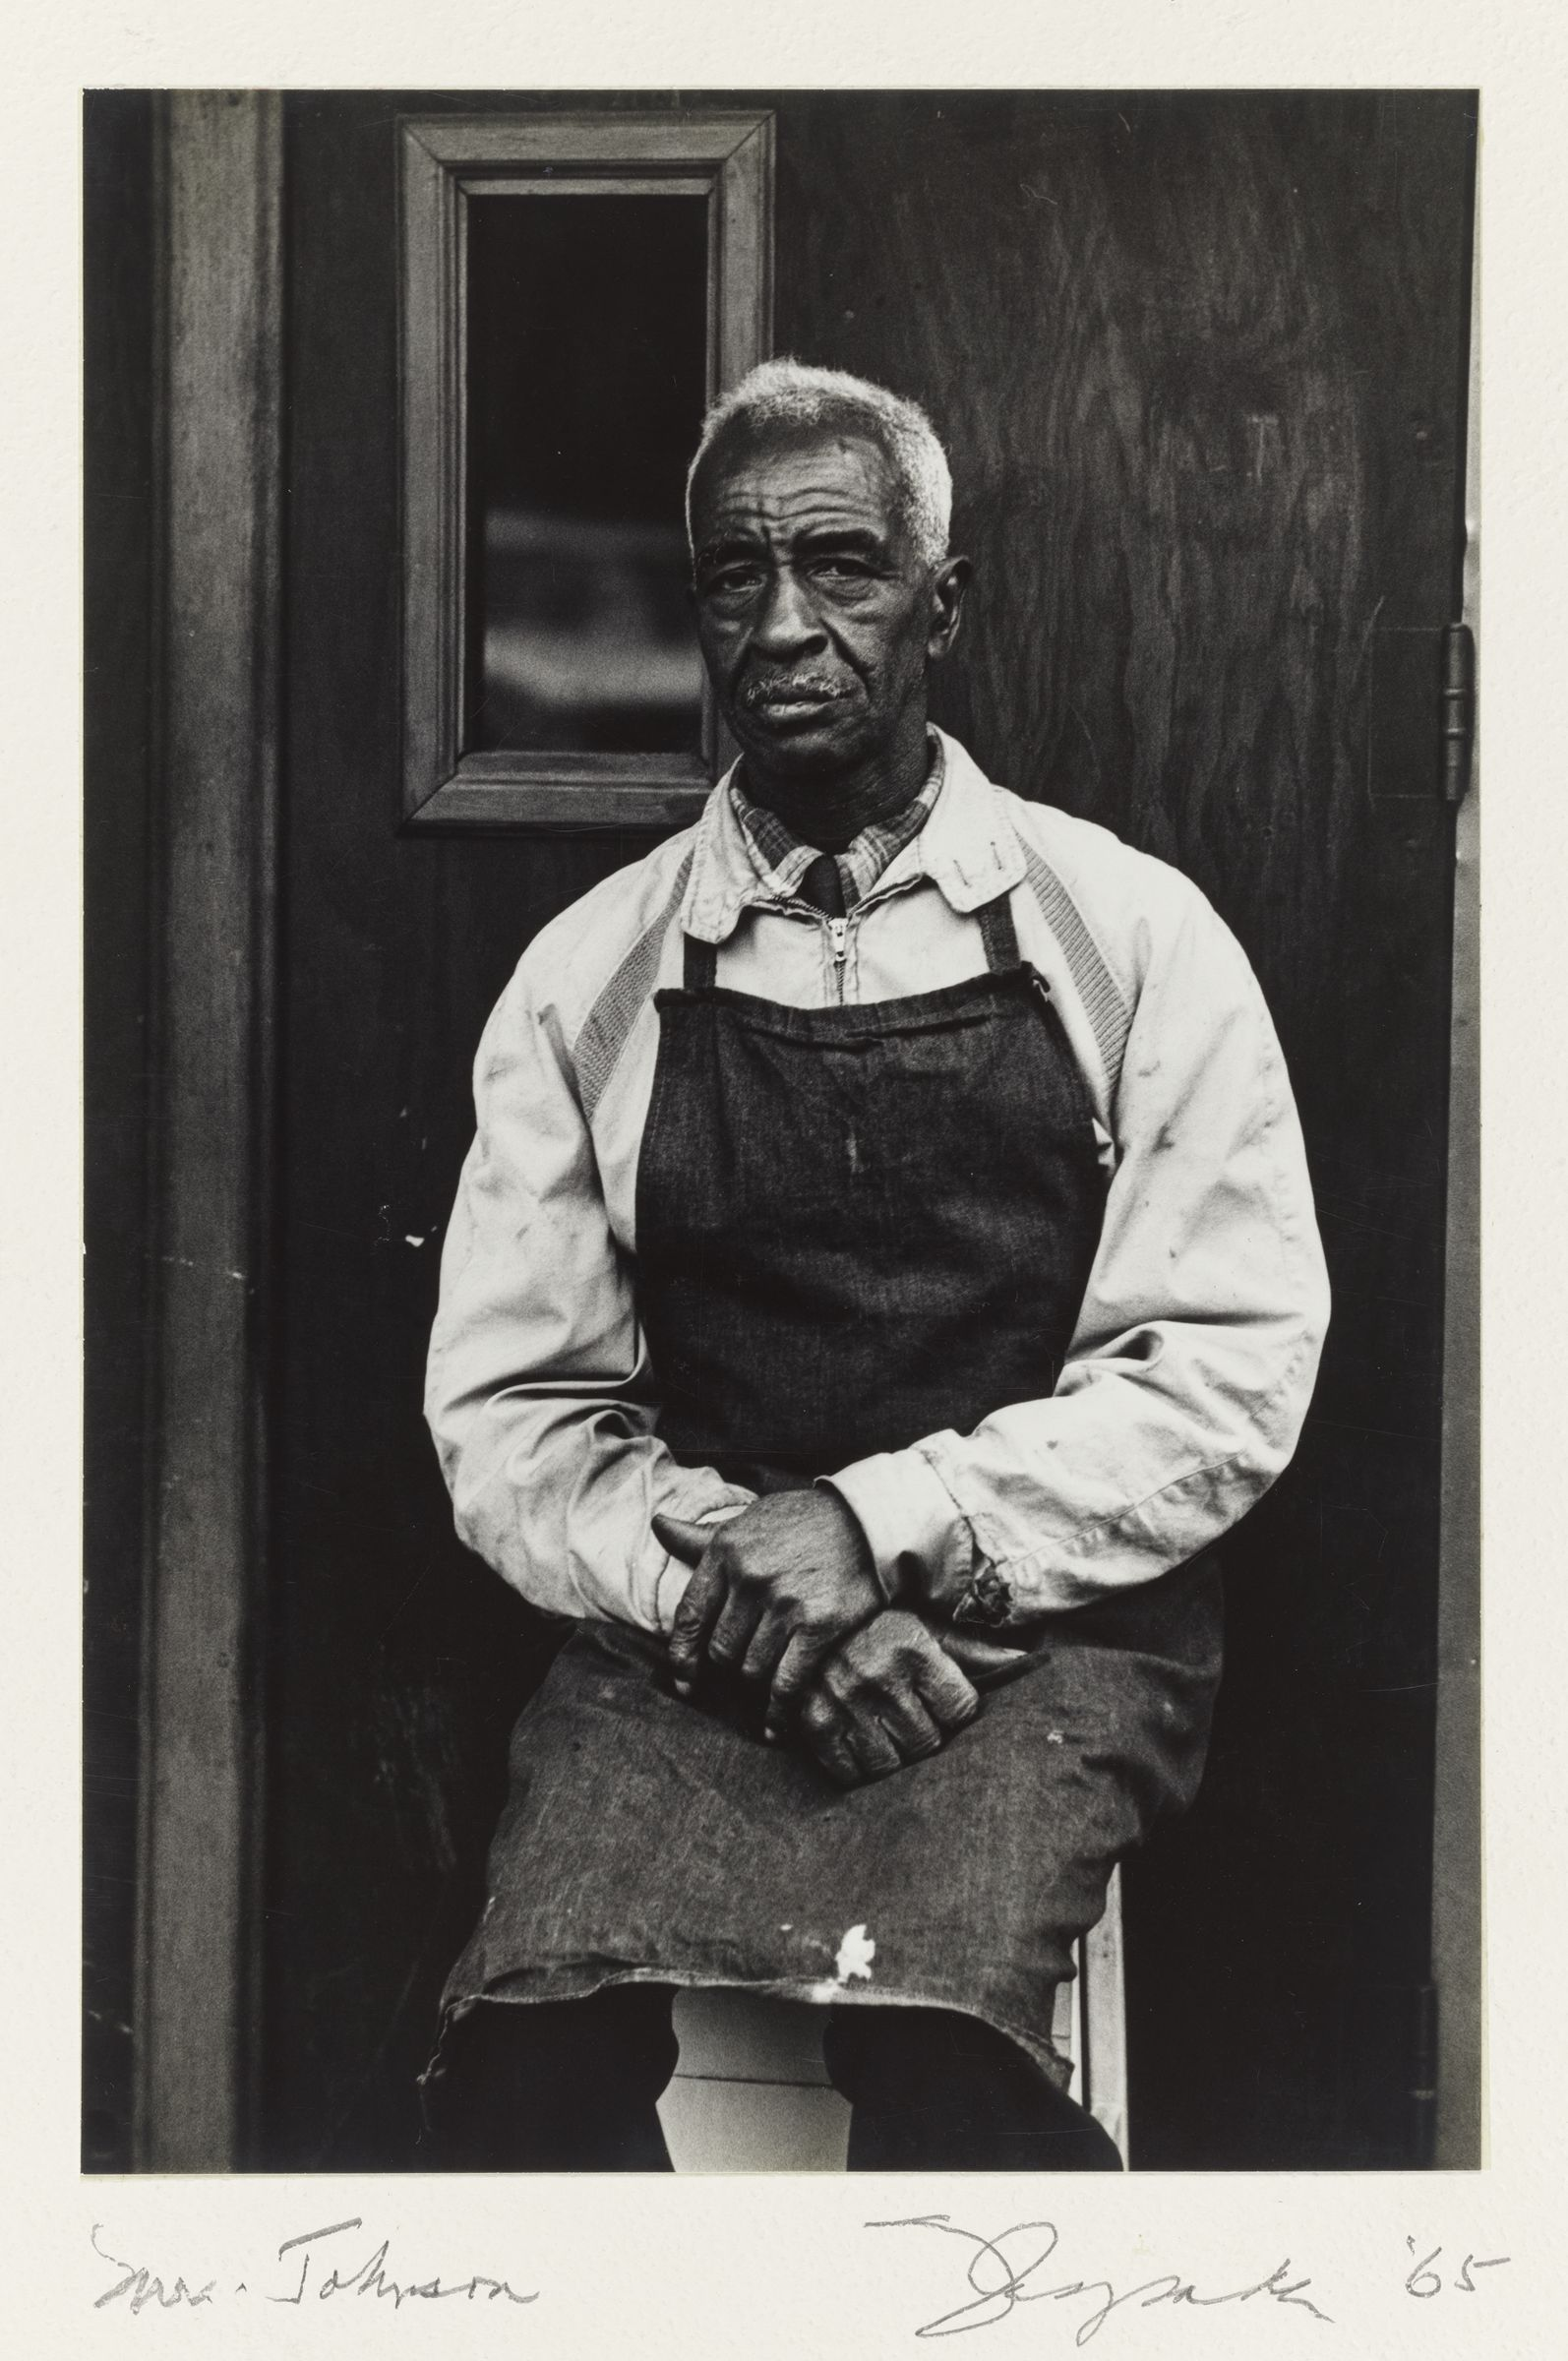 """A black and white photograph shows an older man with white hair and dark skin seated in front of a wooden door with a small rectangular window. He is wearing a light-colored zip-up jacket and a dark-colored apron. He stares directly at the viewer, his large hands folded neatly on his lap. """"Mr. Johnson,"""" """"'65,"""" and the artist's signature are scribbled in the bottom margin of the photograph."""